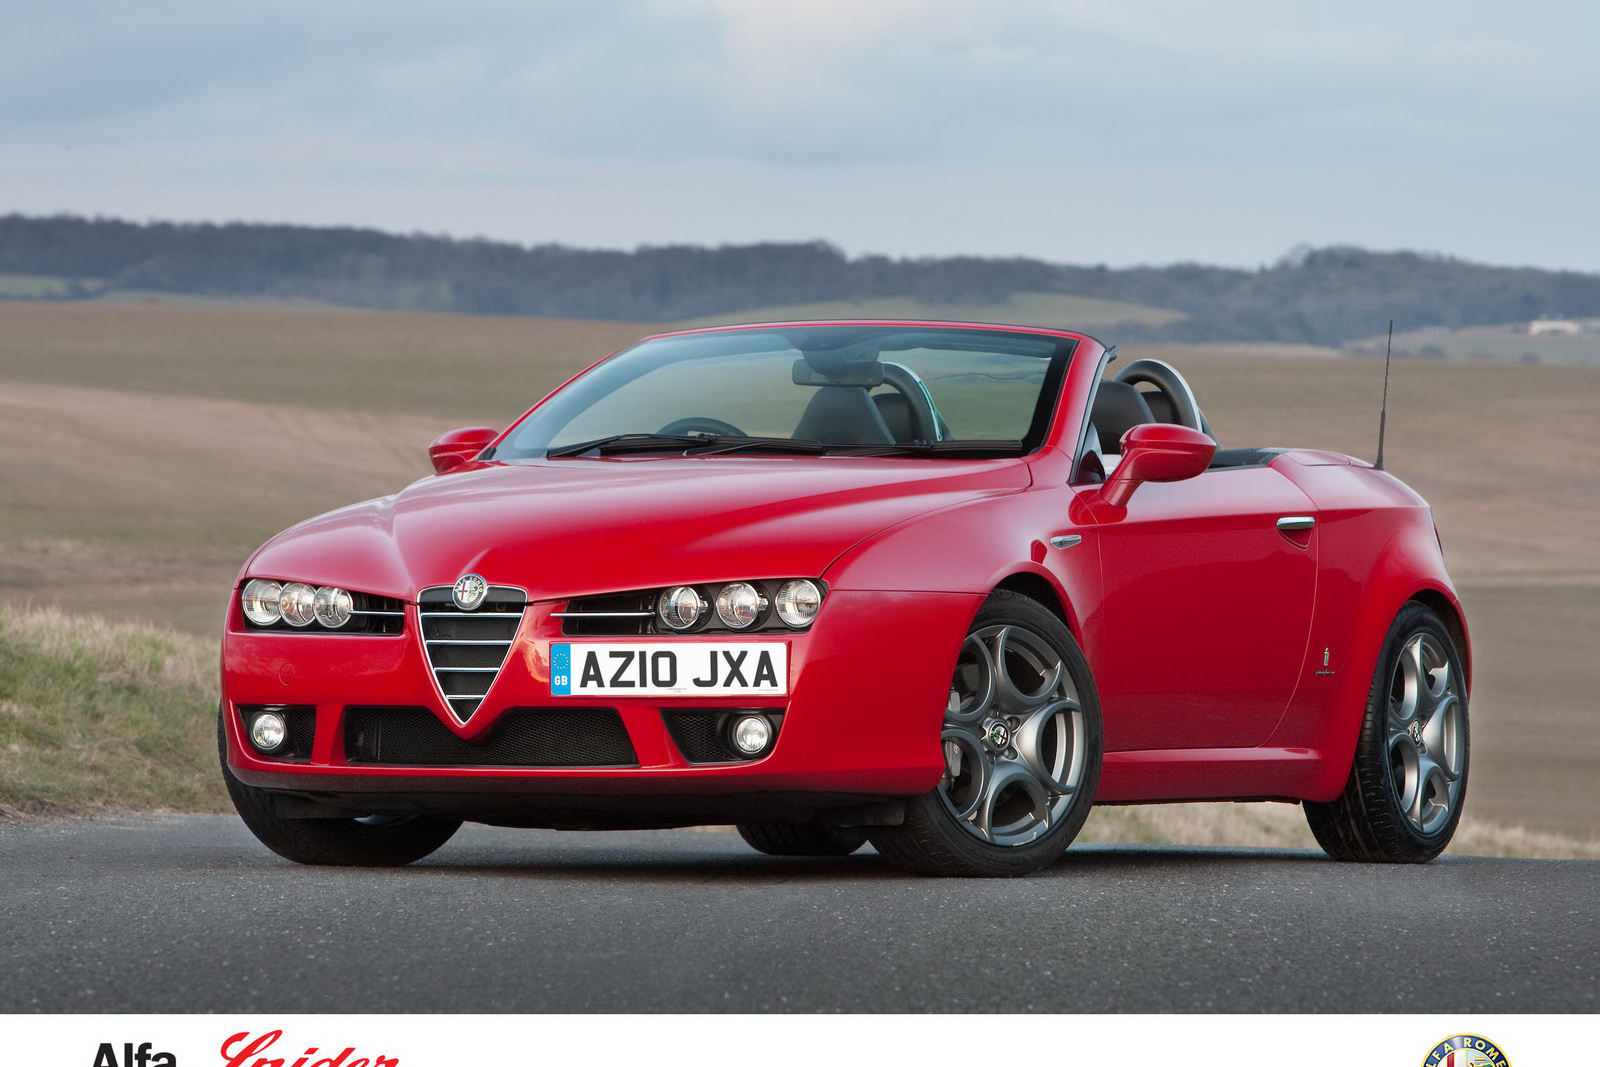 alfa uk adds new turbo engines and special version to brera and spider range. Black Bedroom Furniture Sets. Home Design Ideas